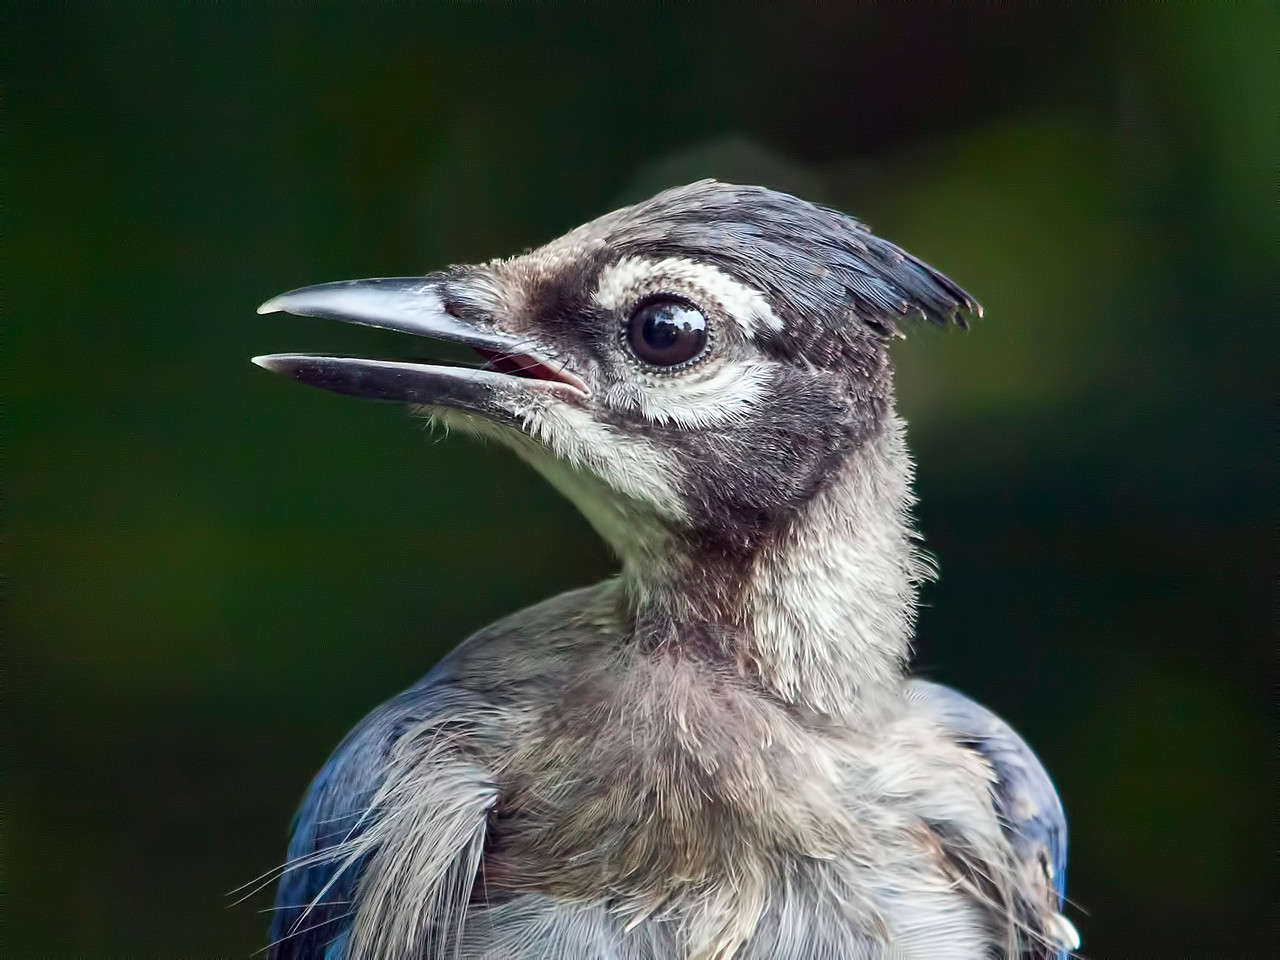 A fledgling blue jay. Not too pretty. Taken in July. It is now January and this fellow has continued to visit my feeders and is quite handsome now. 1.13.13